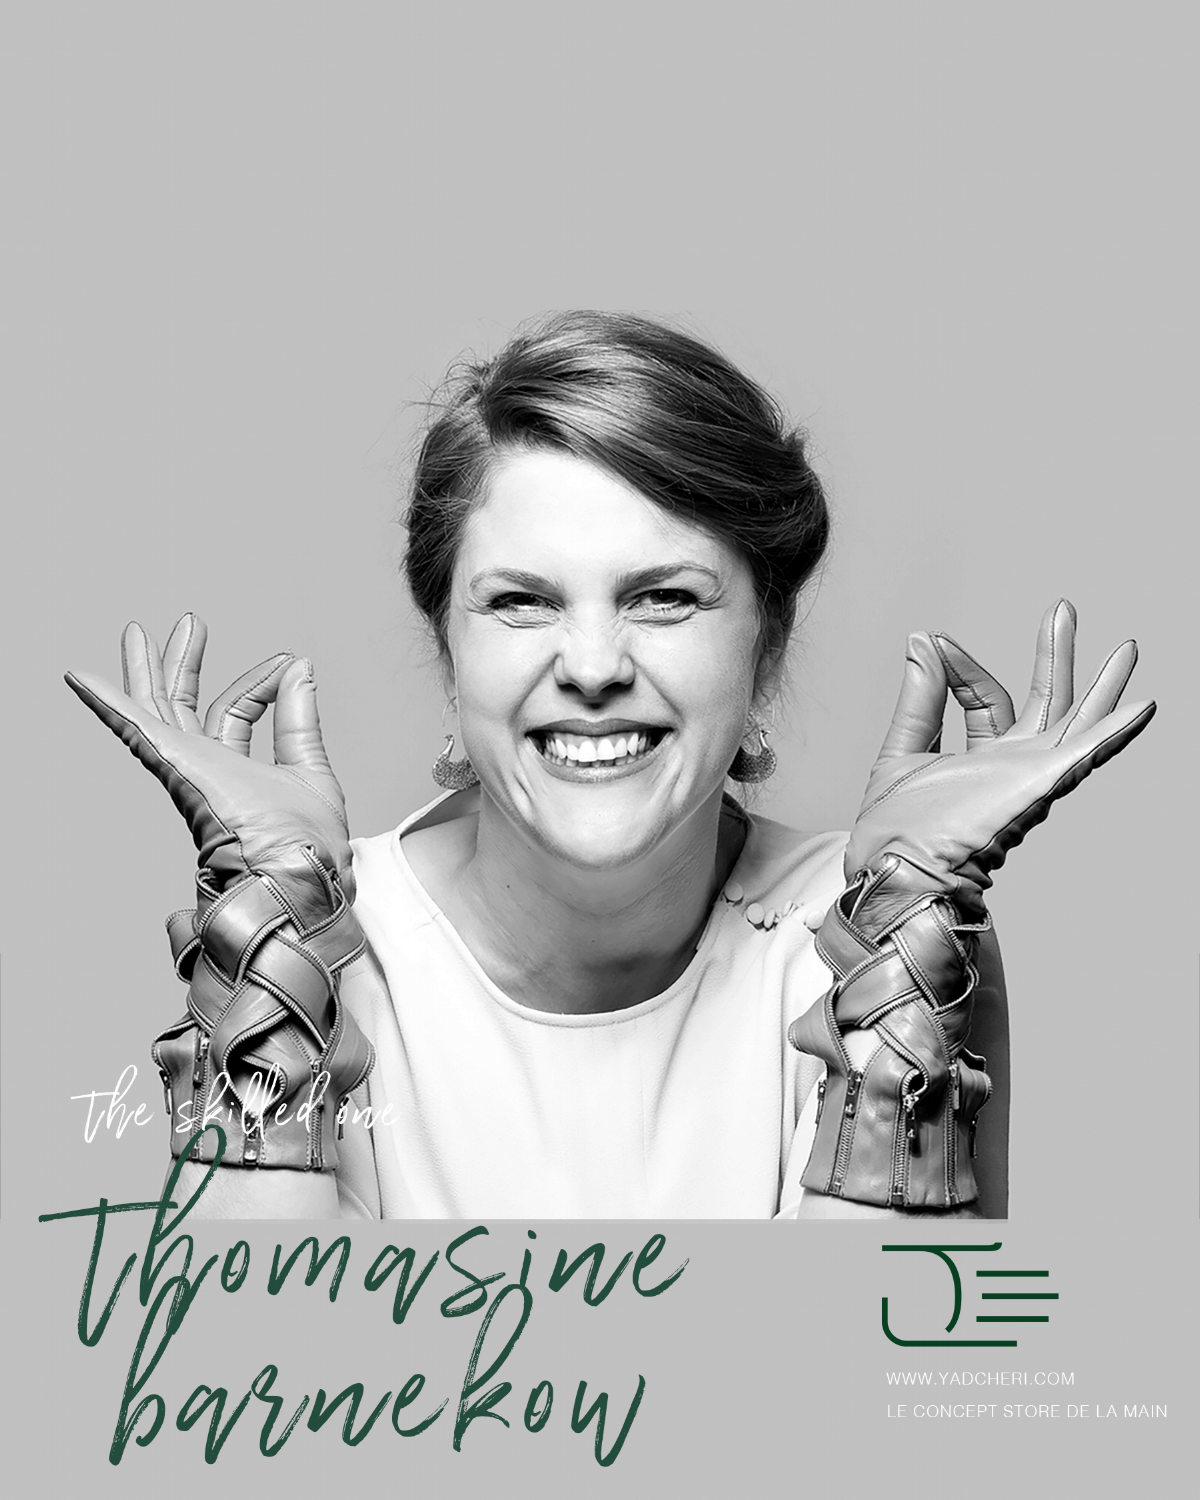 An adventurous spirit and a creative mind would be how to define Thomasine Barnekow. Born in Sweden, she later graduated from the Design Academy.